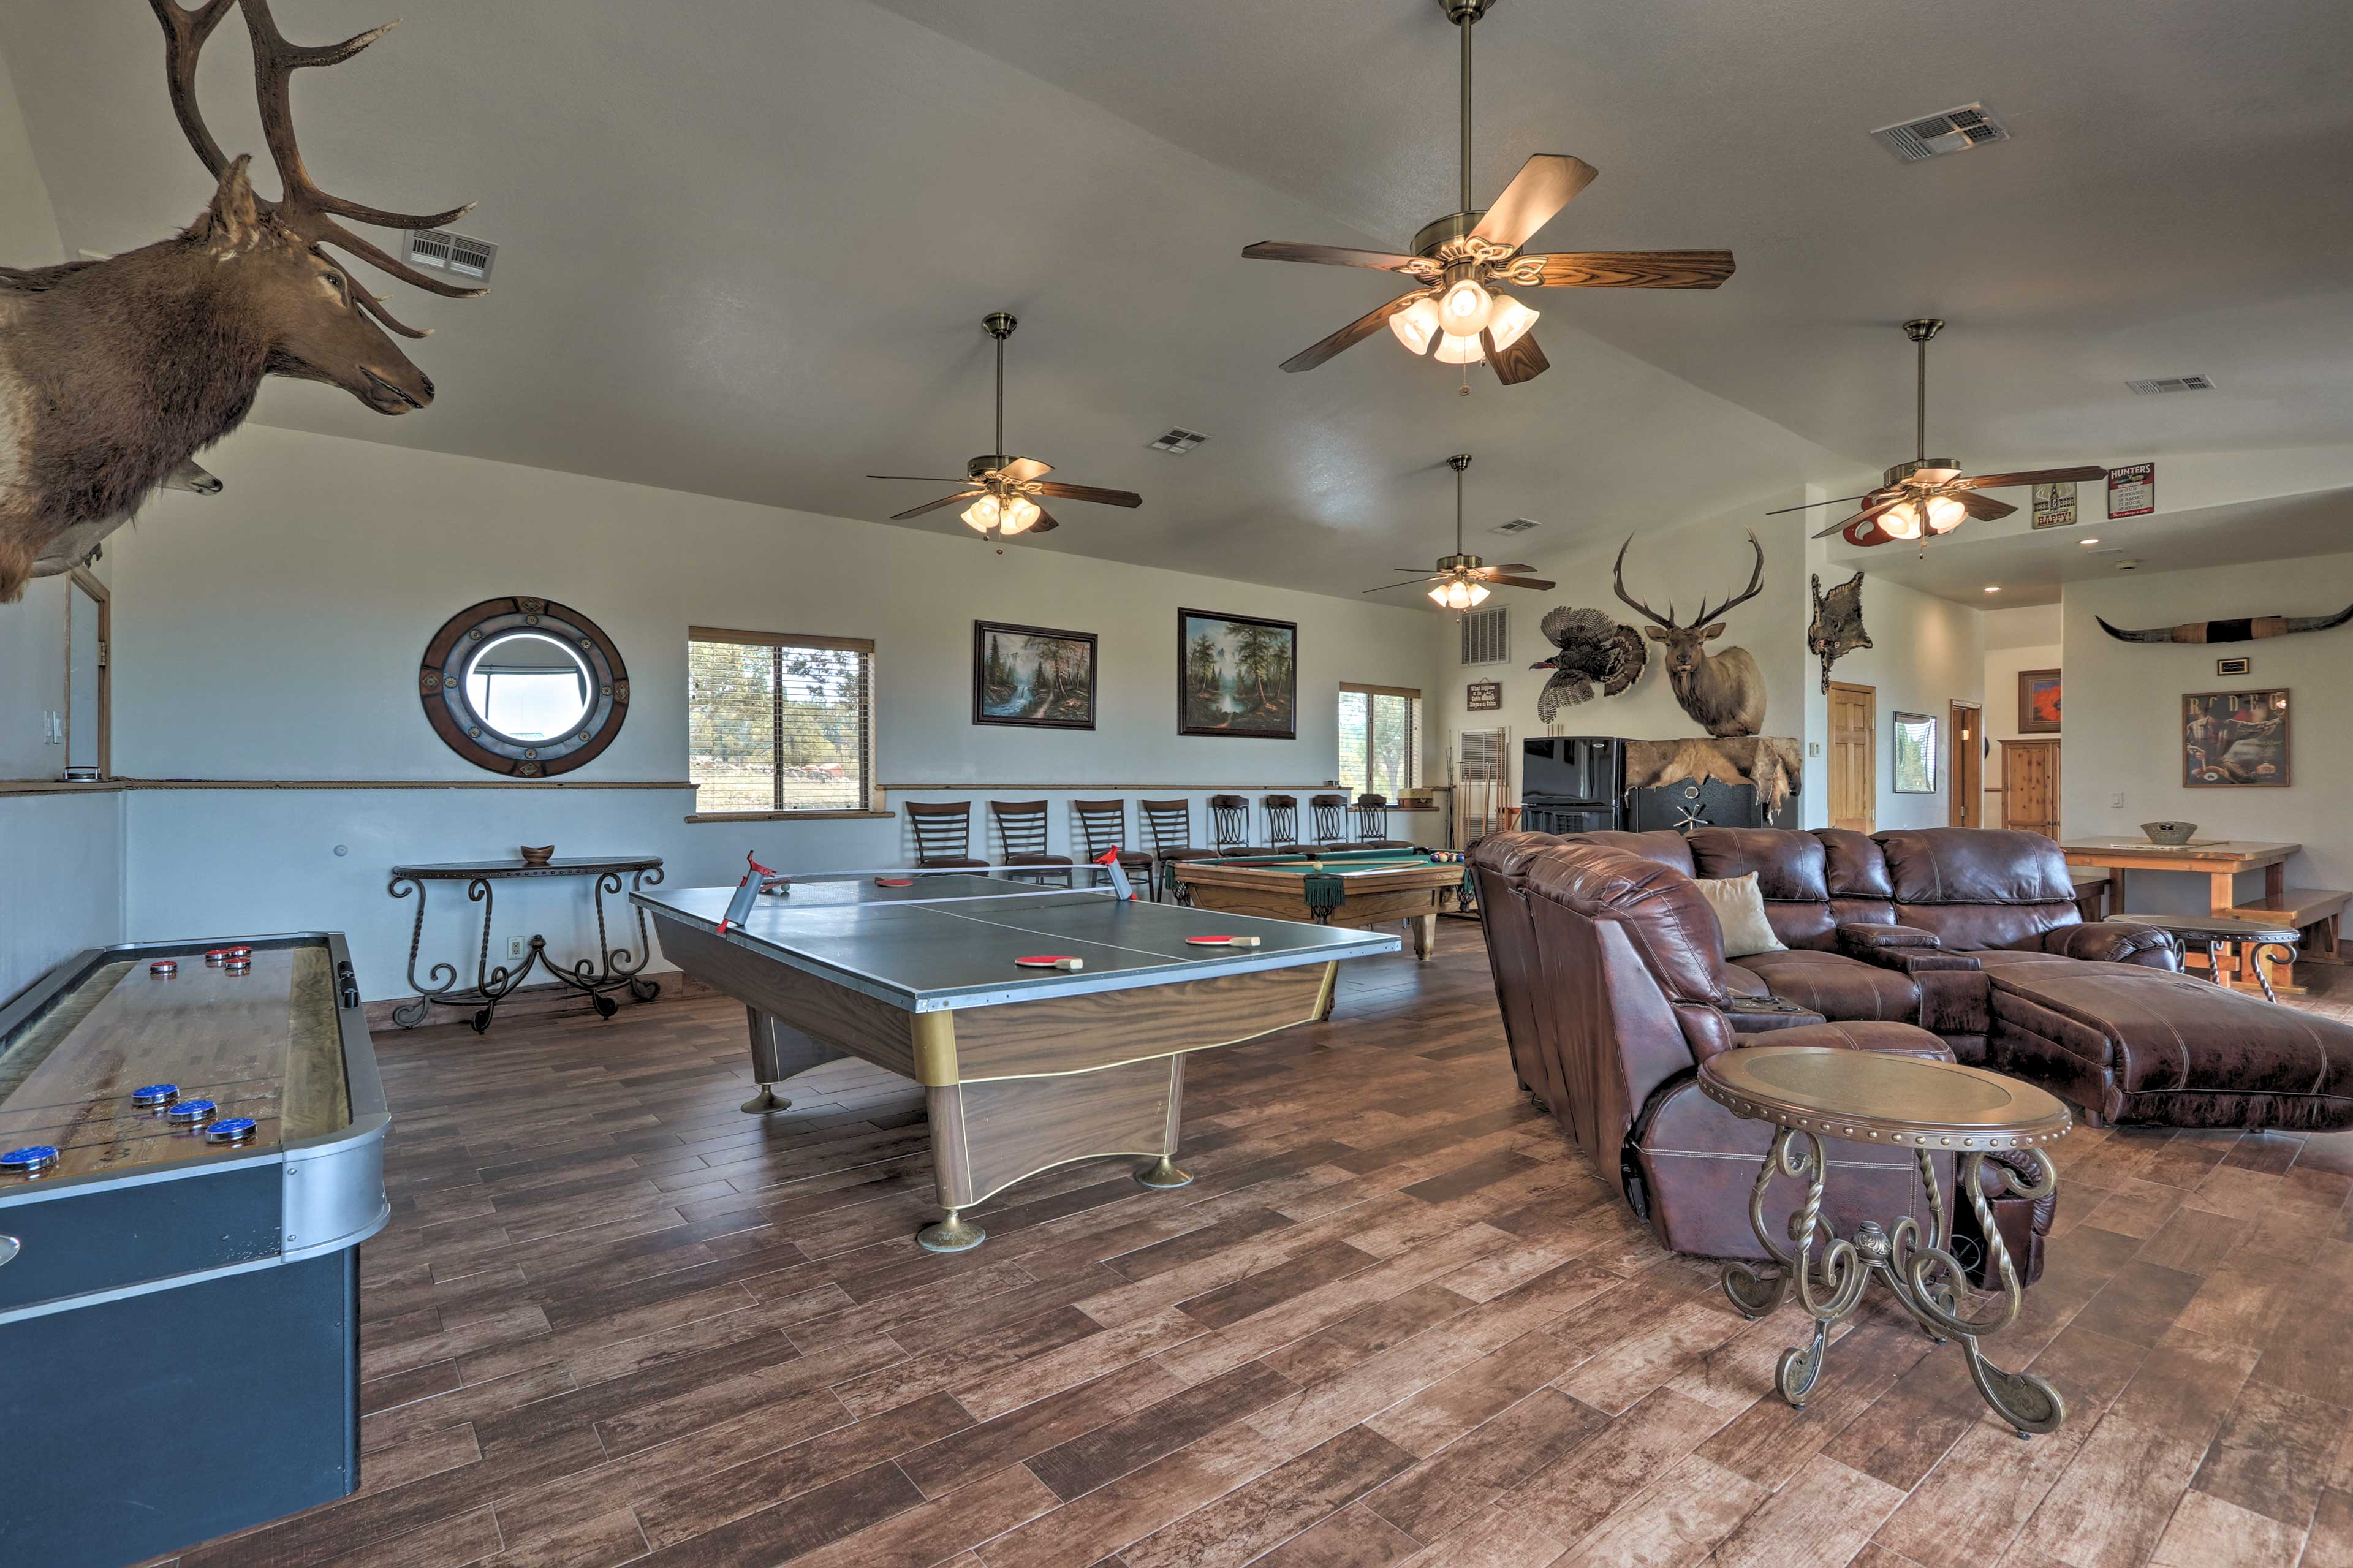 It features a pool table, flat-screen TV, and second refrigerator.